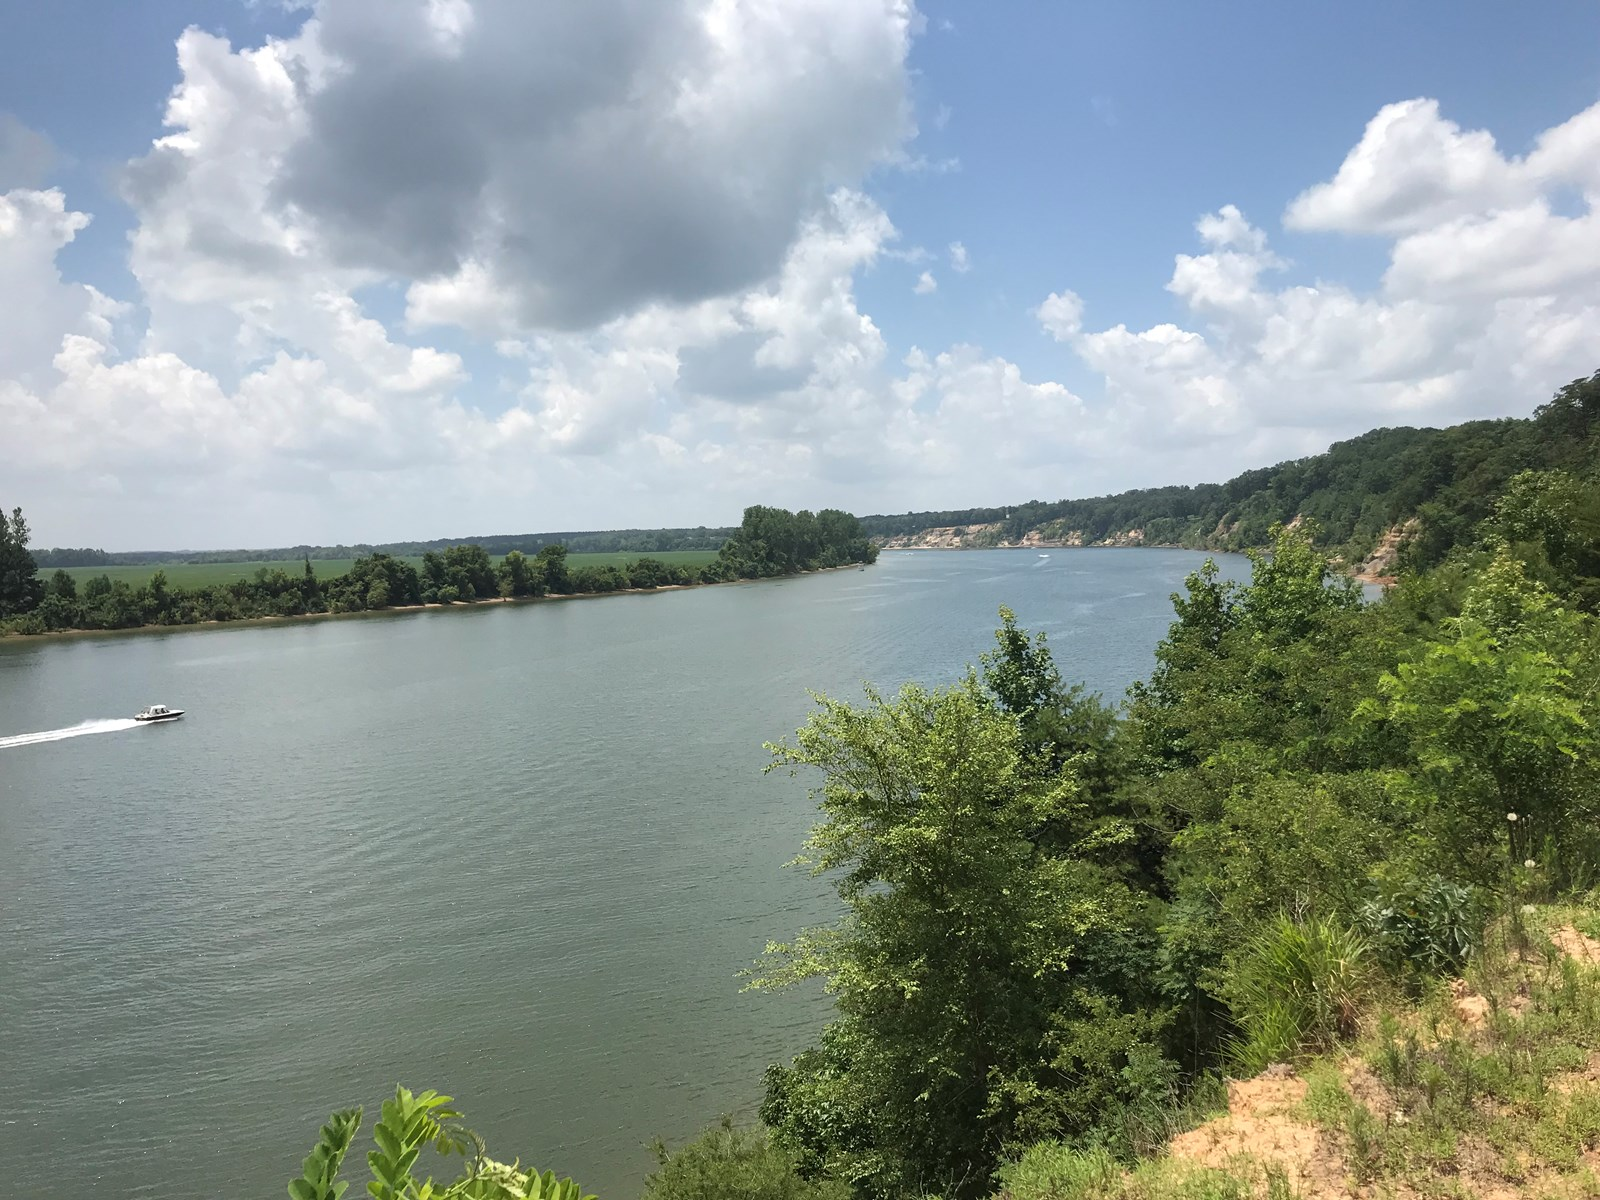 RIVER FRONT LAND FOR SALE IN TN ON TENNESSEE RIVER